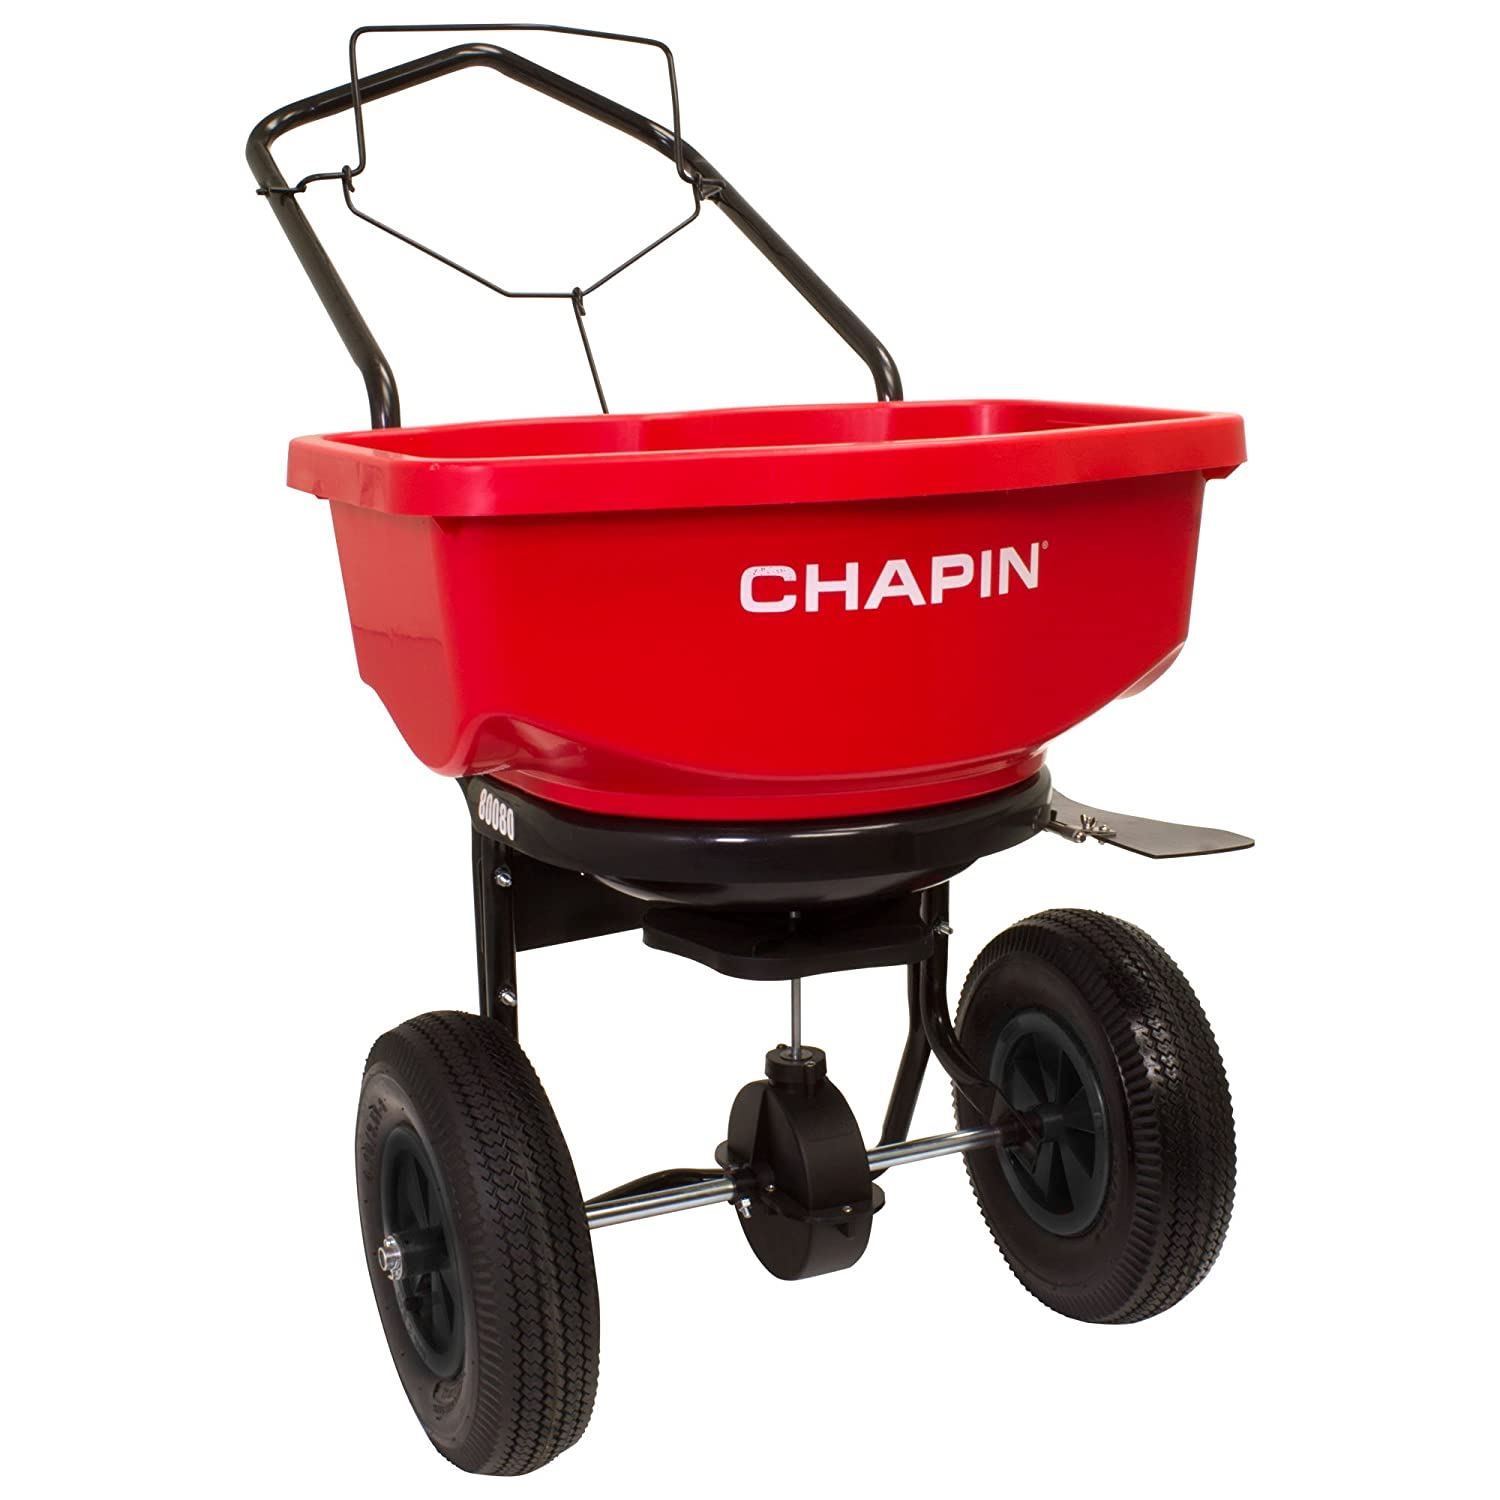 Chapin International 80080 Chapin All Season Residential Spreader, 80 lb, Red